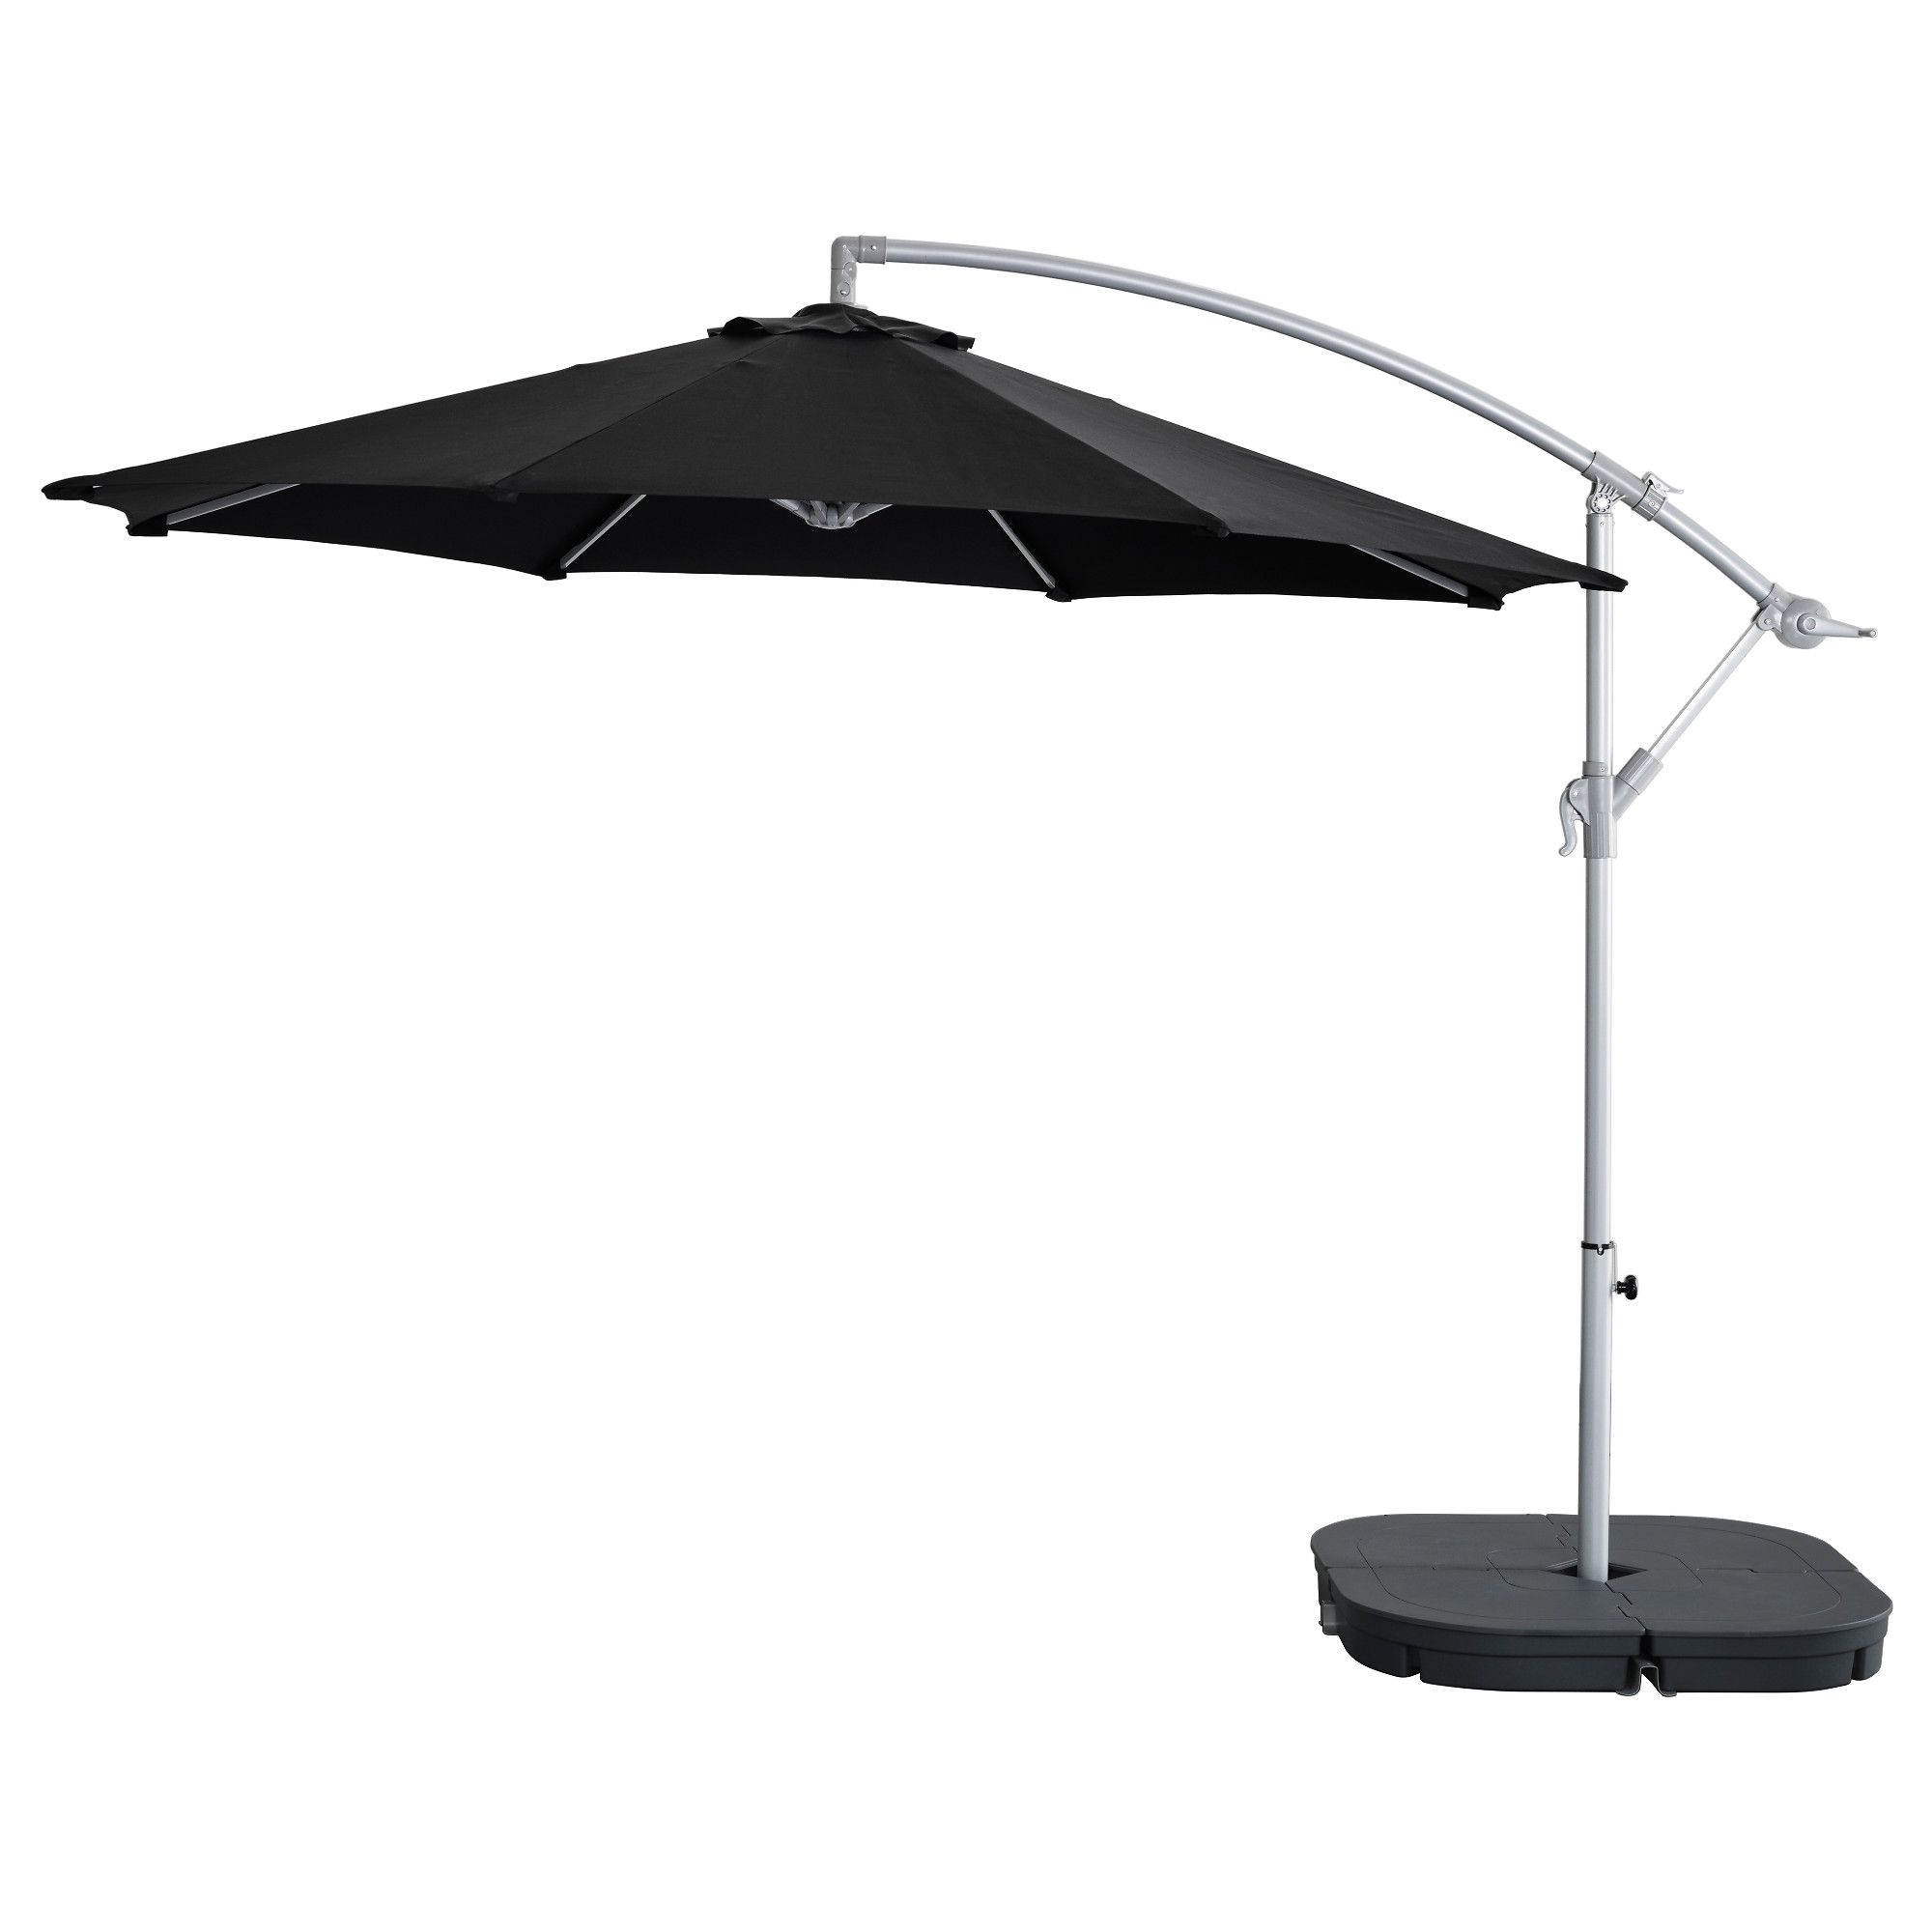 2019 Ikea Patio Umbrellas In Karlsö / Svartö Parasol, Suspendu Avec Socle – Noir/gris Foncé (View 11 of 20)